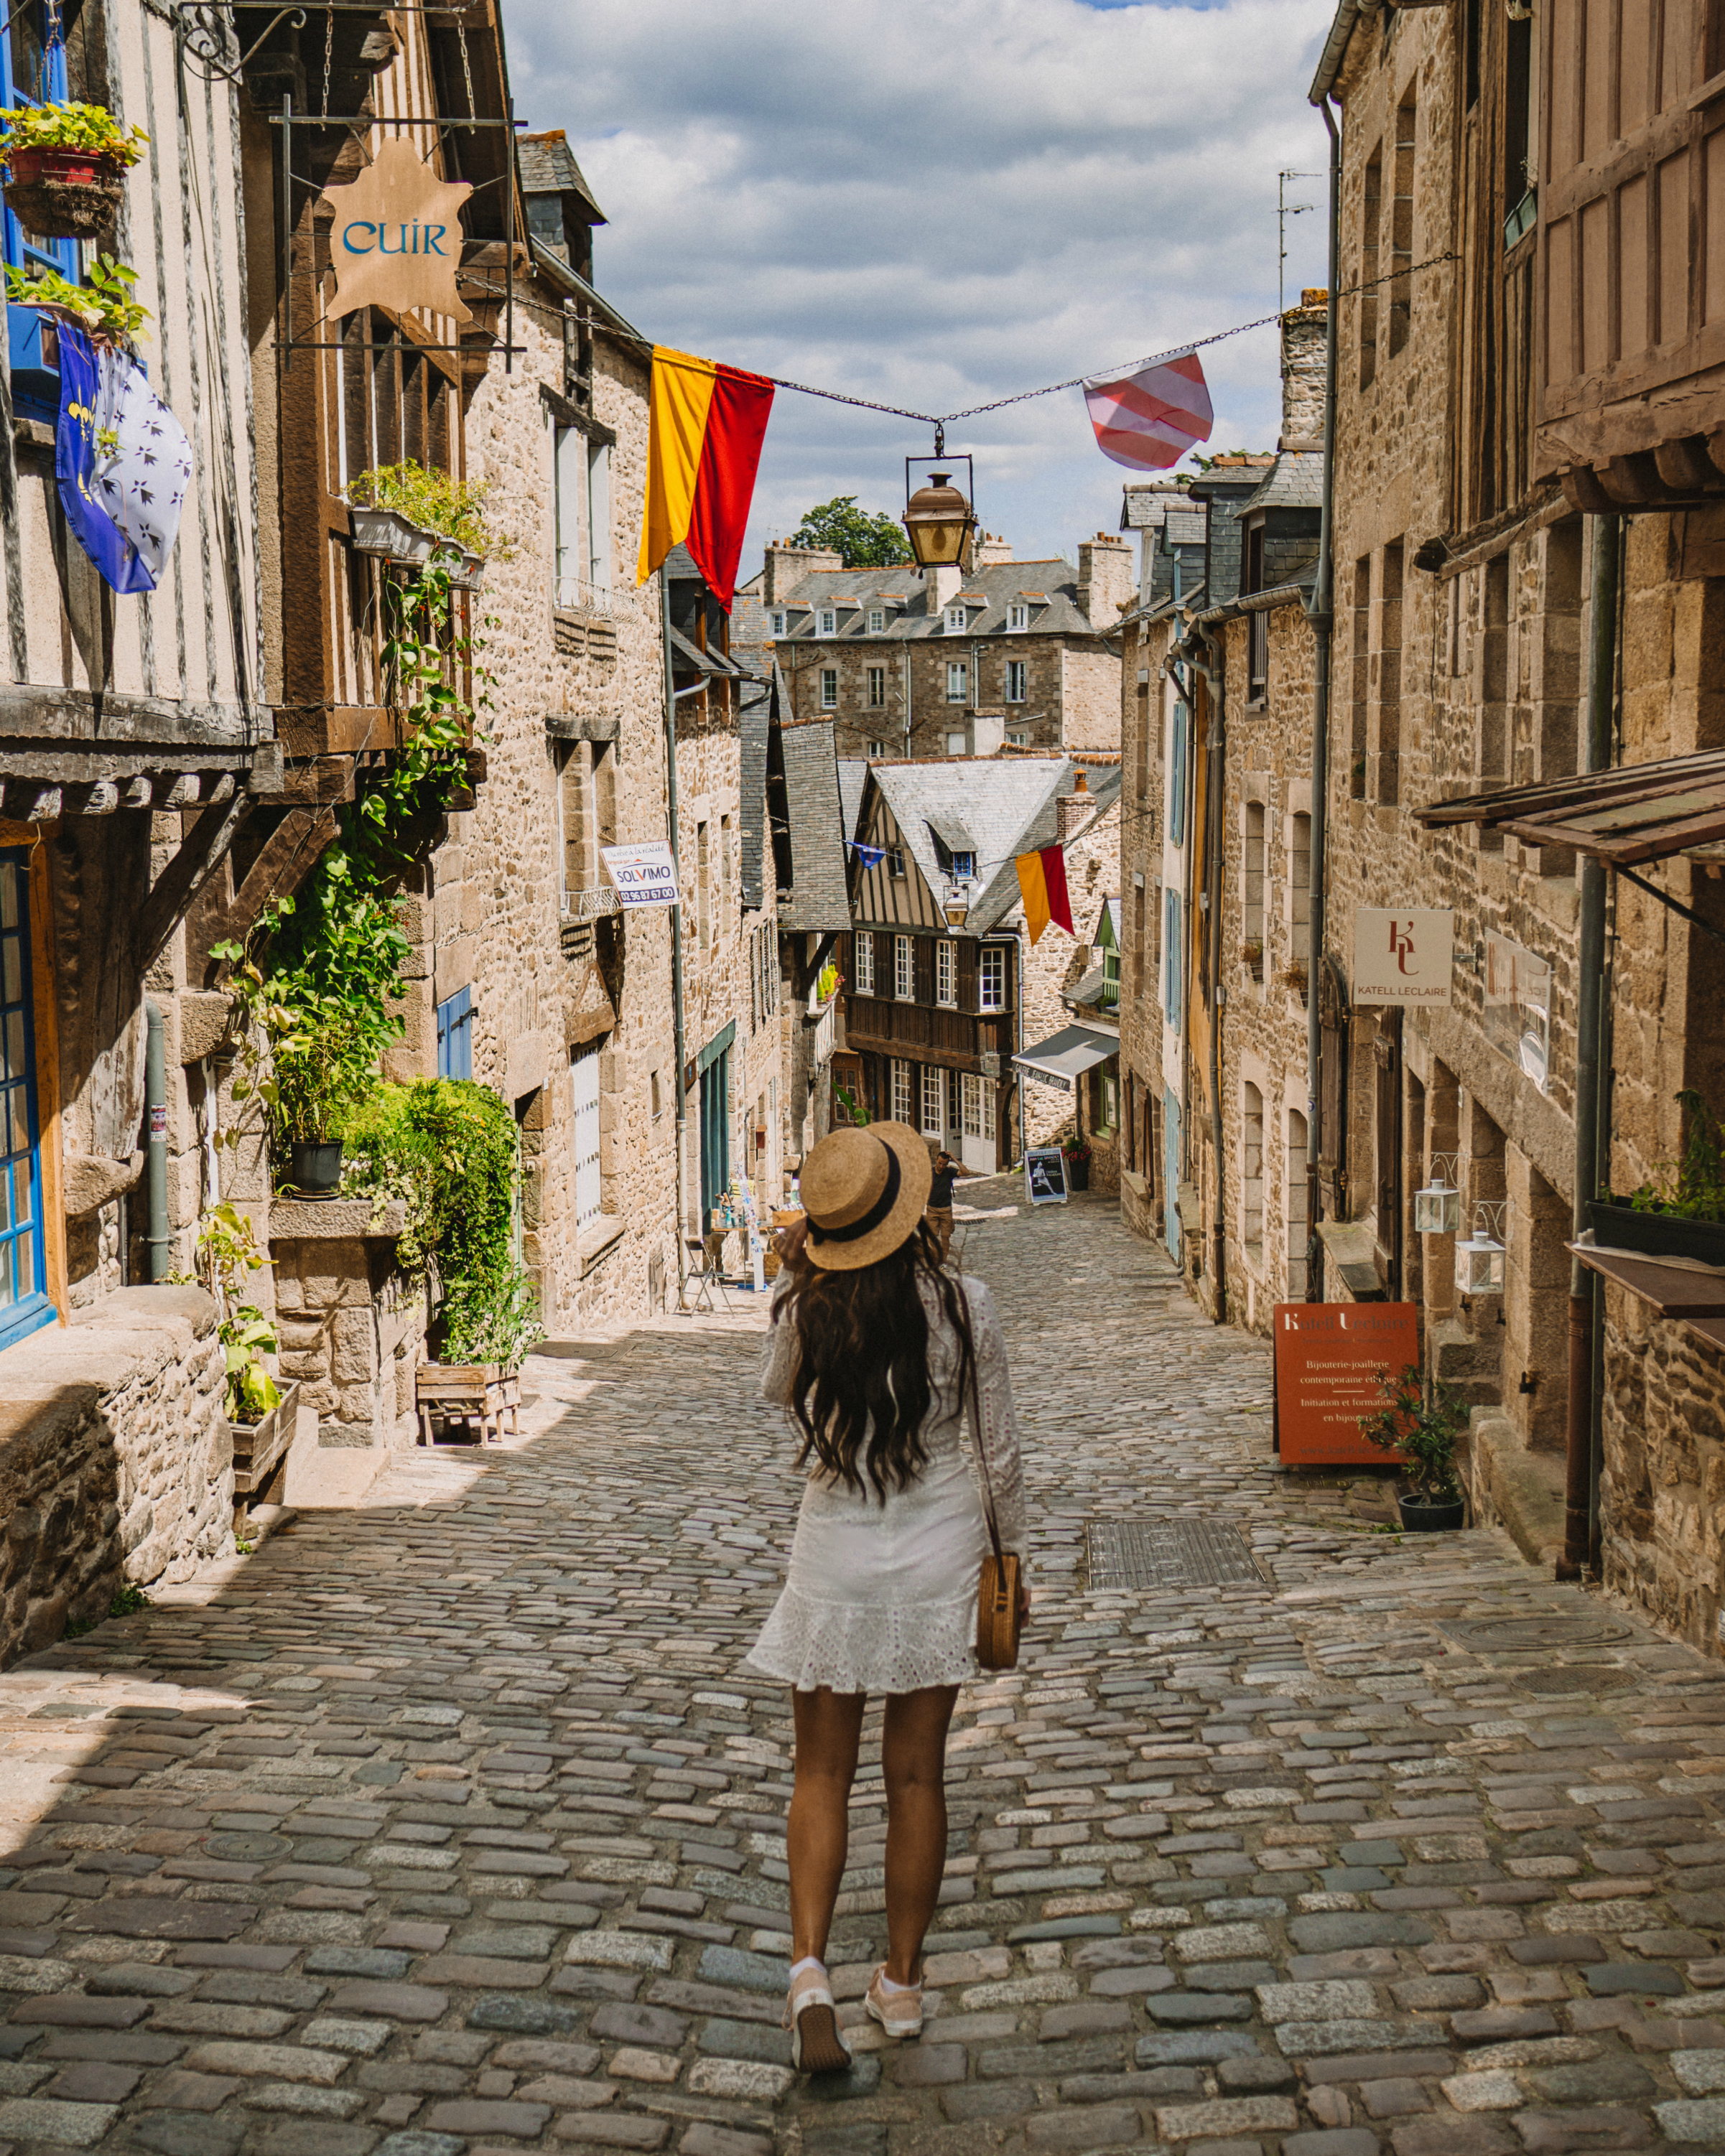 Walking down Rue du Petit Fort, Dinan, France